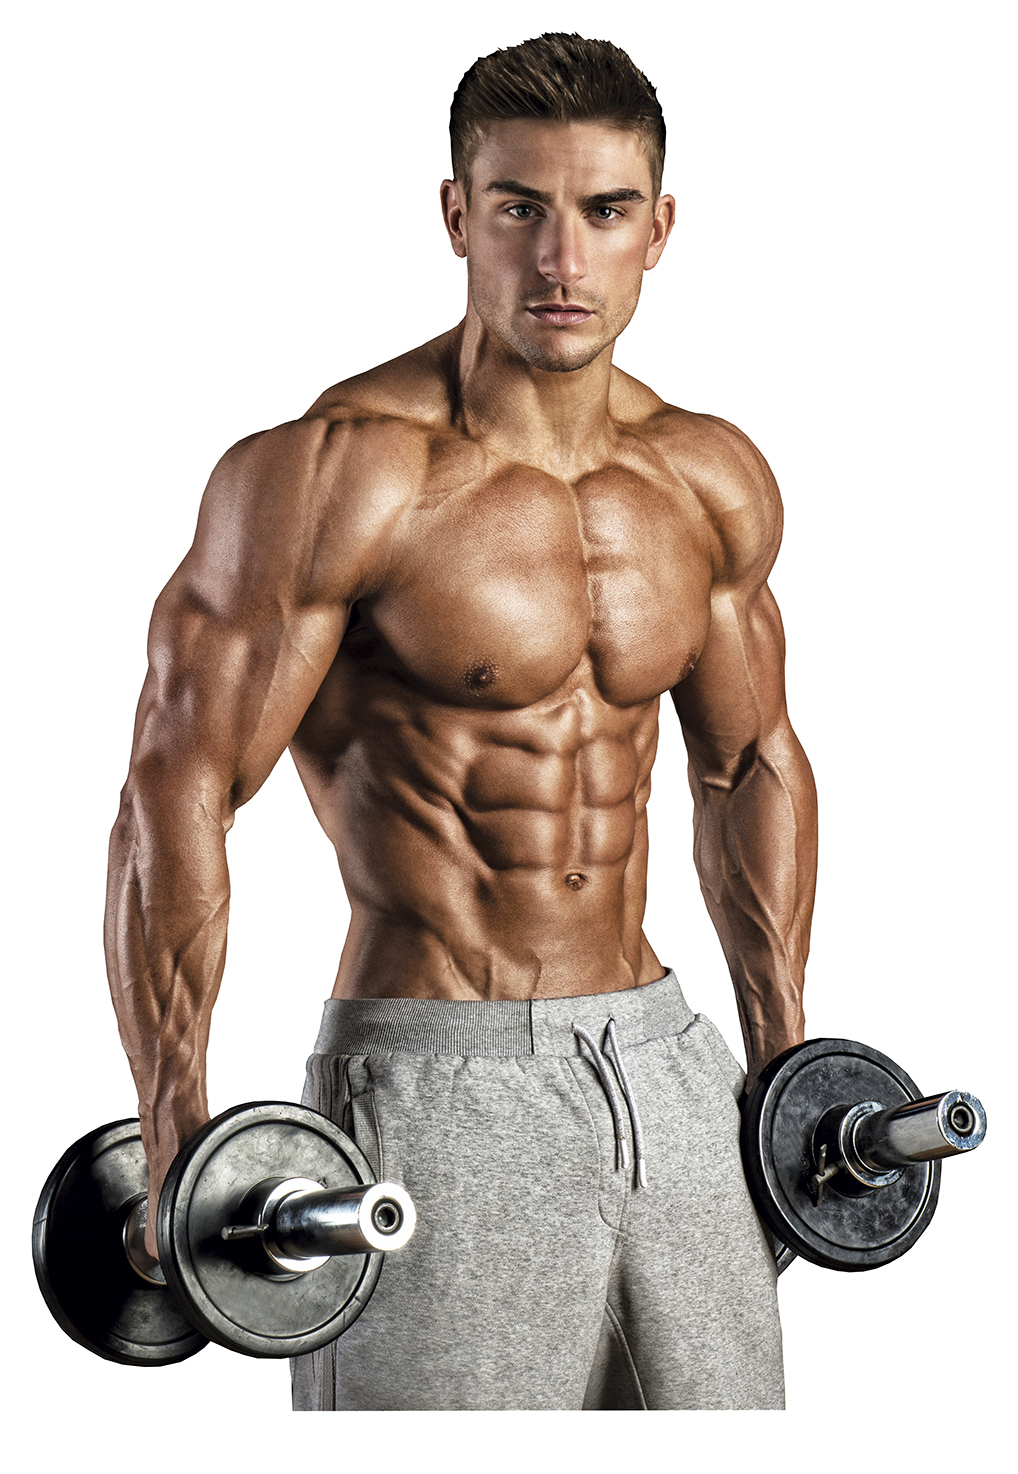 ryan terry - ryan terry 60 - great muscle bodies